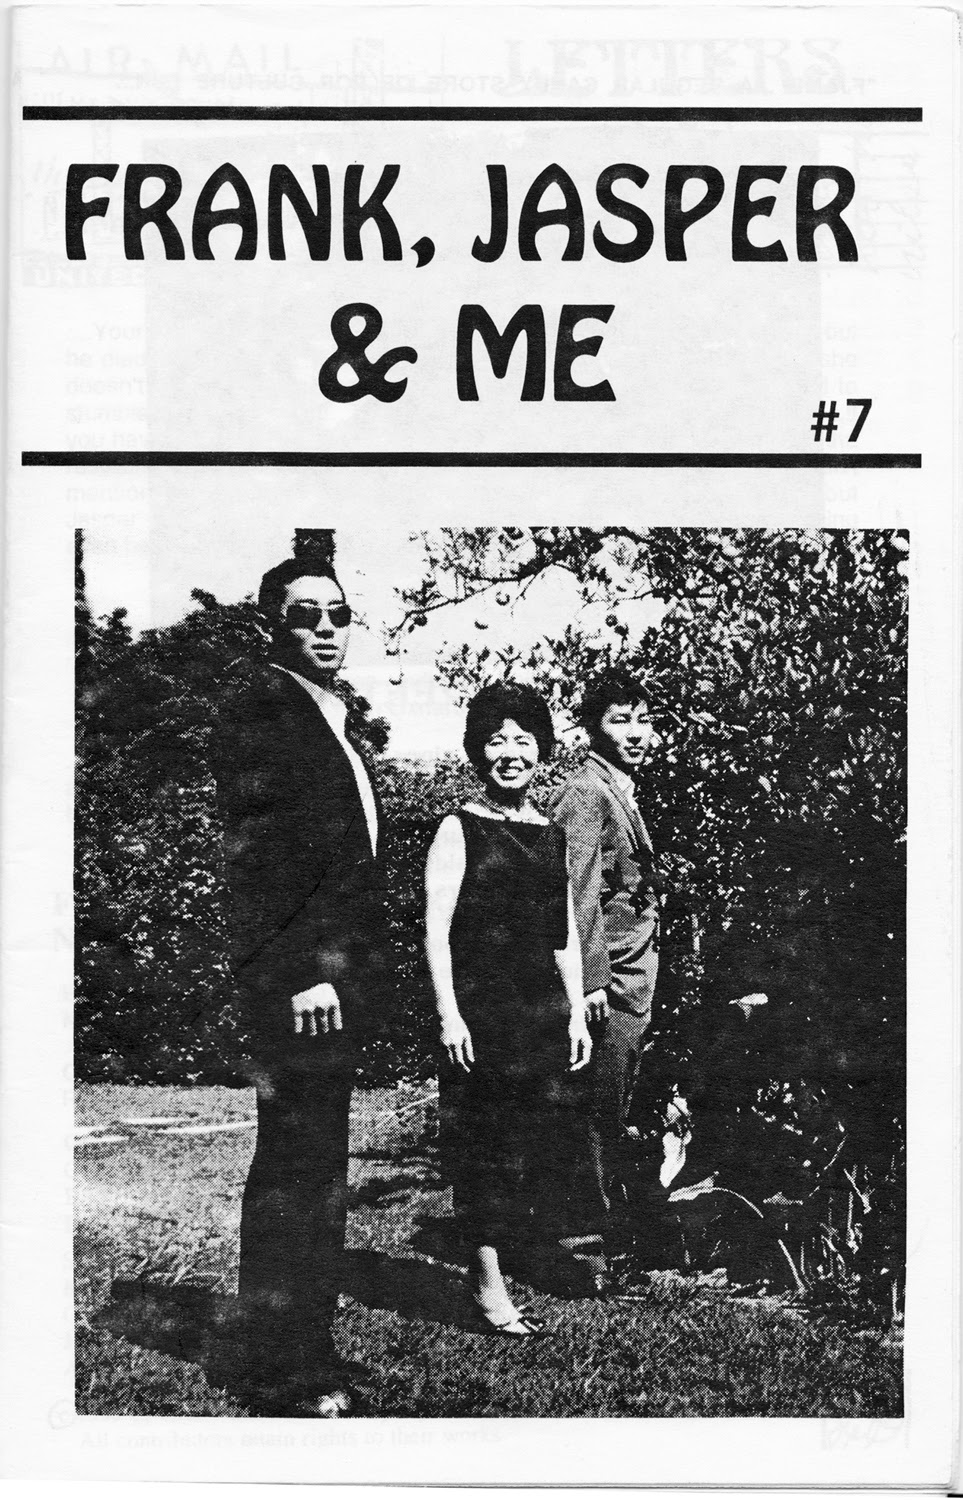 Frank, Jasper and Me Zine Cover from Ponyboy Press from 1999